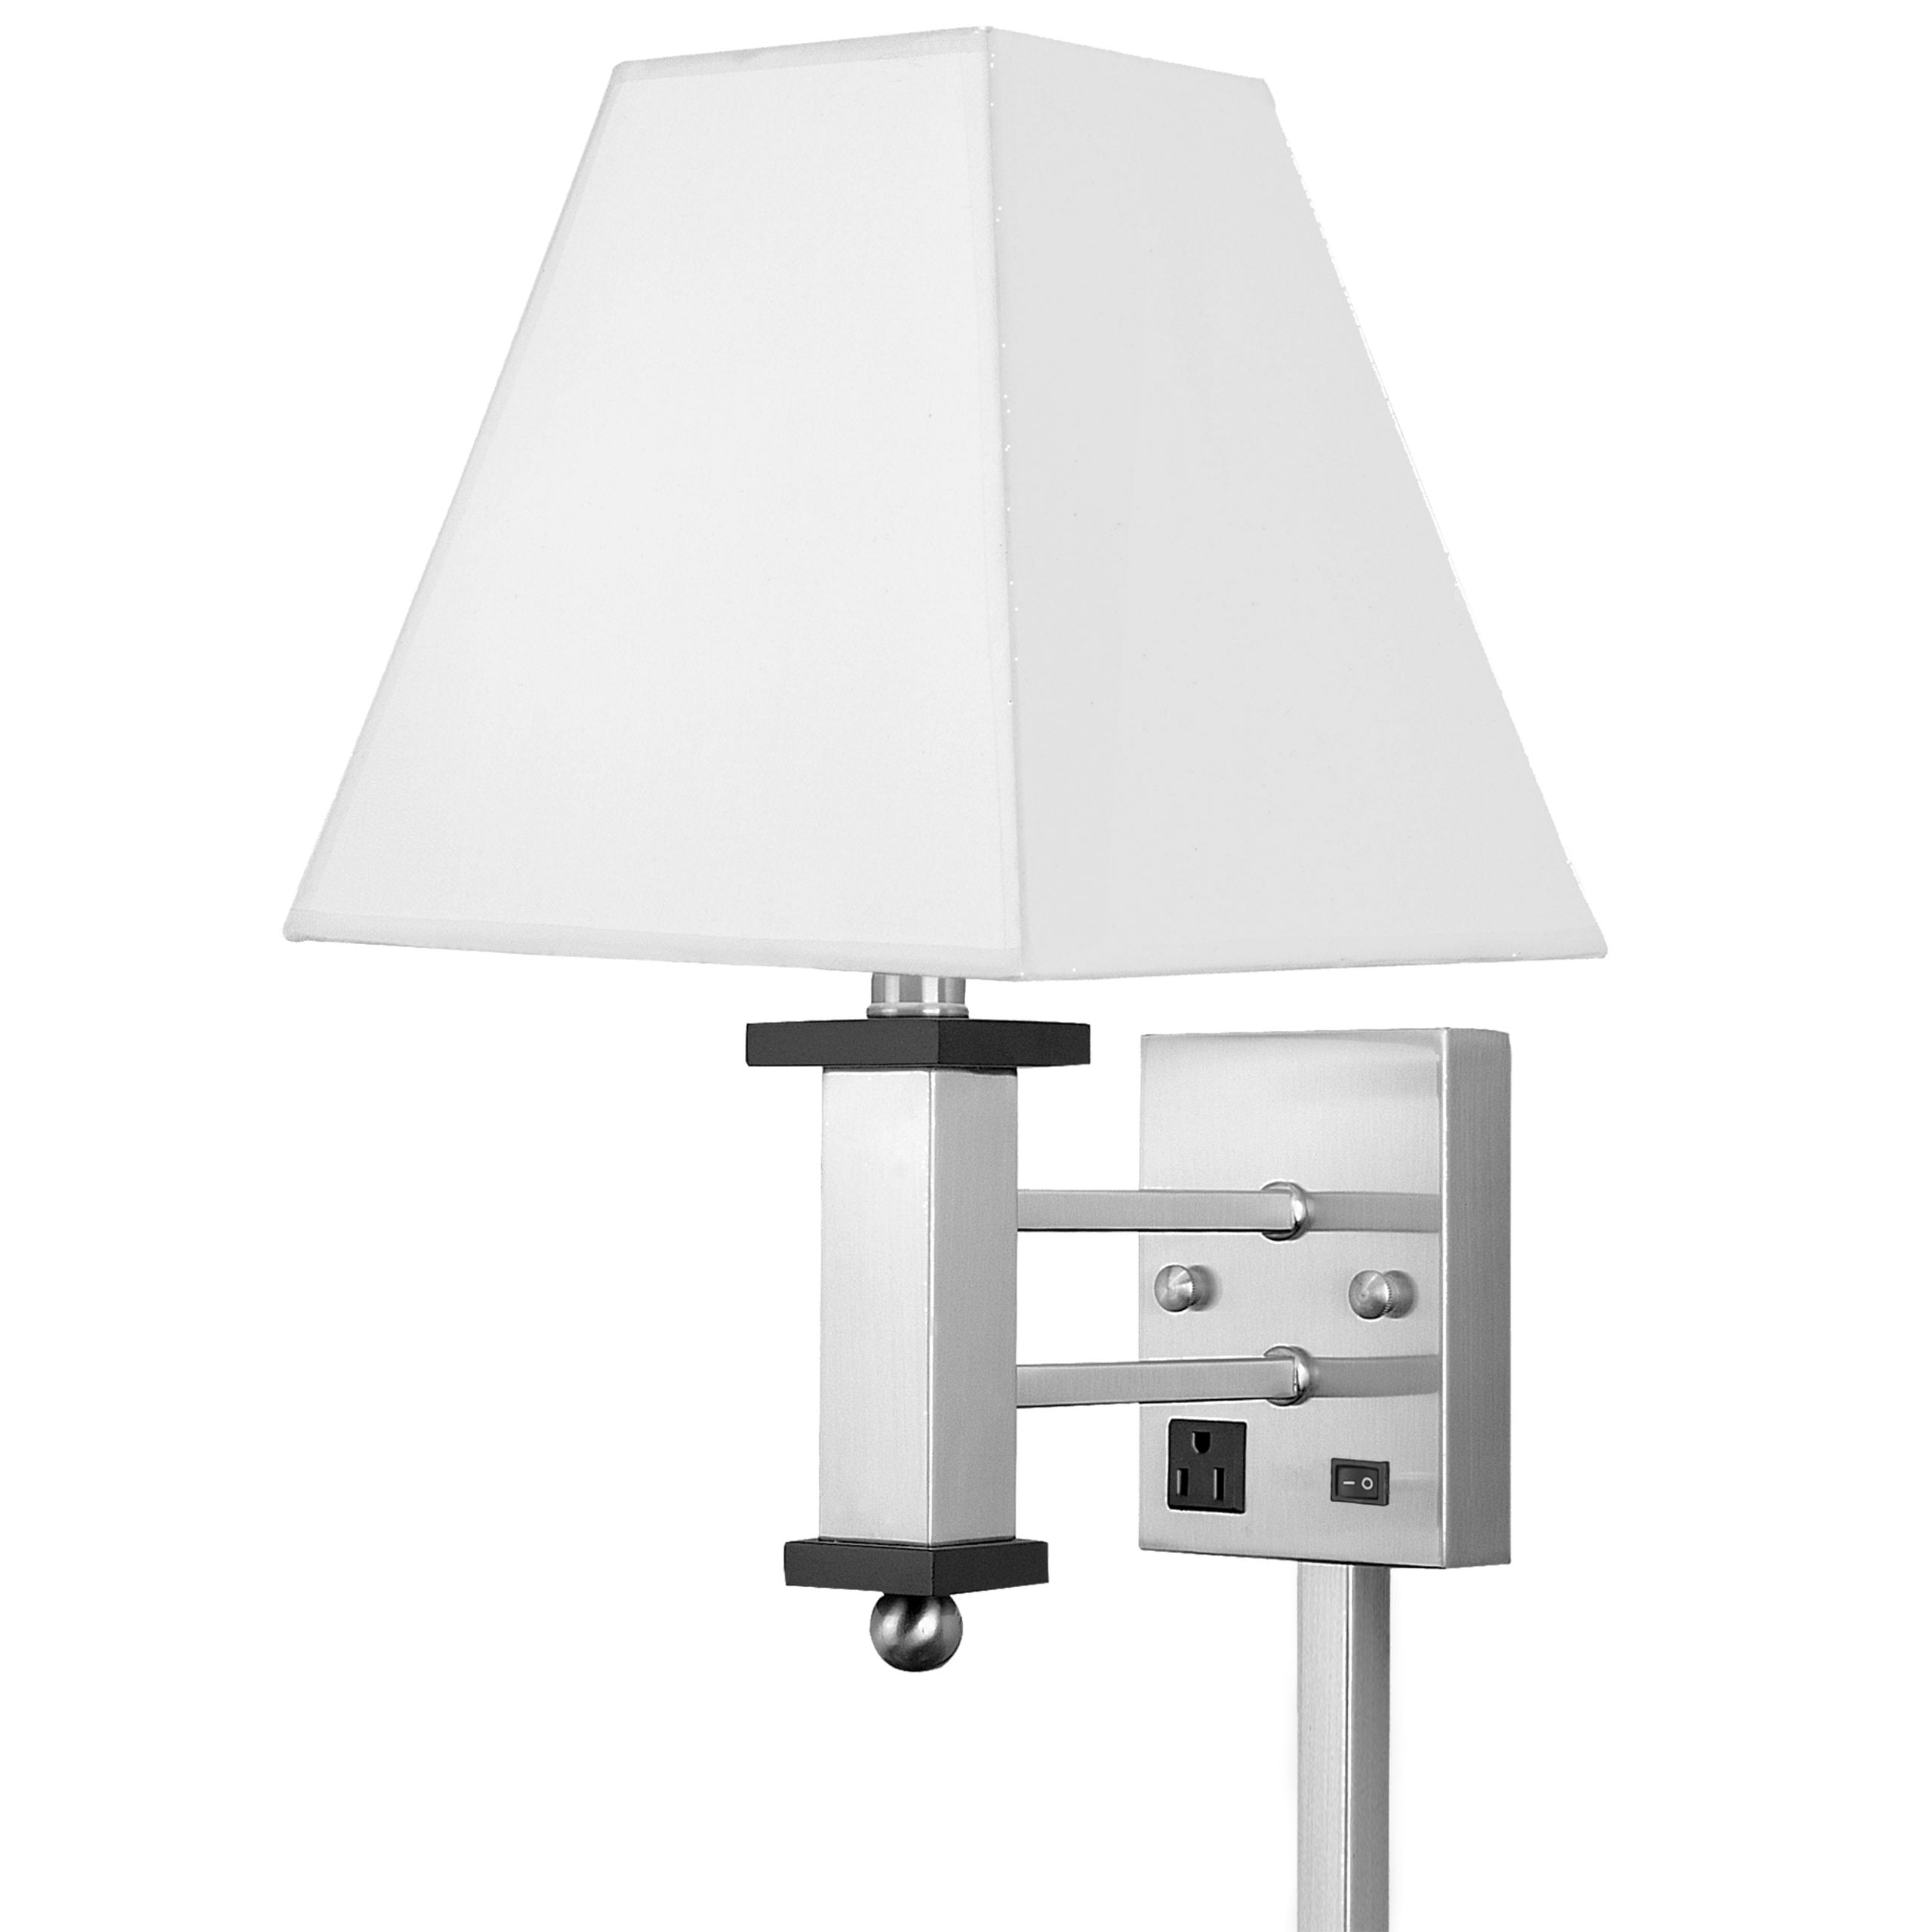 Andaaz Single Wall Lamp with 1 Outlet